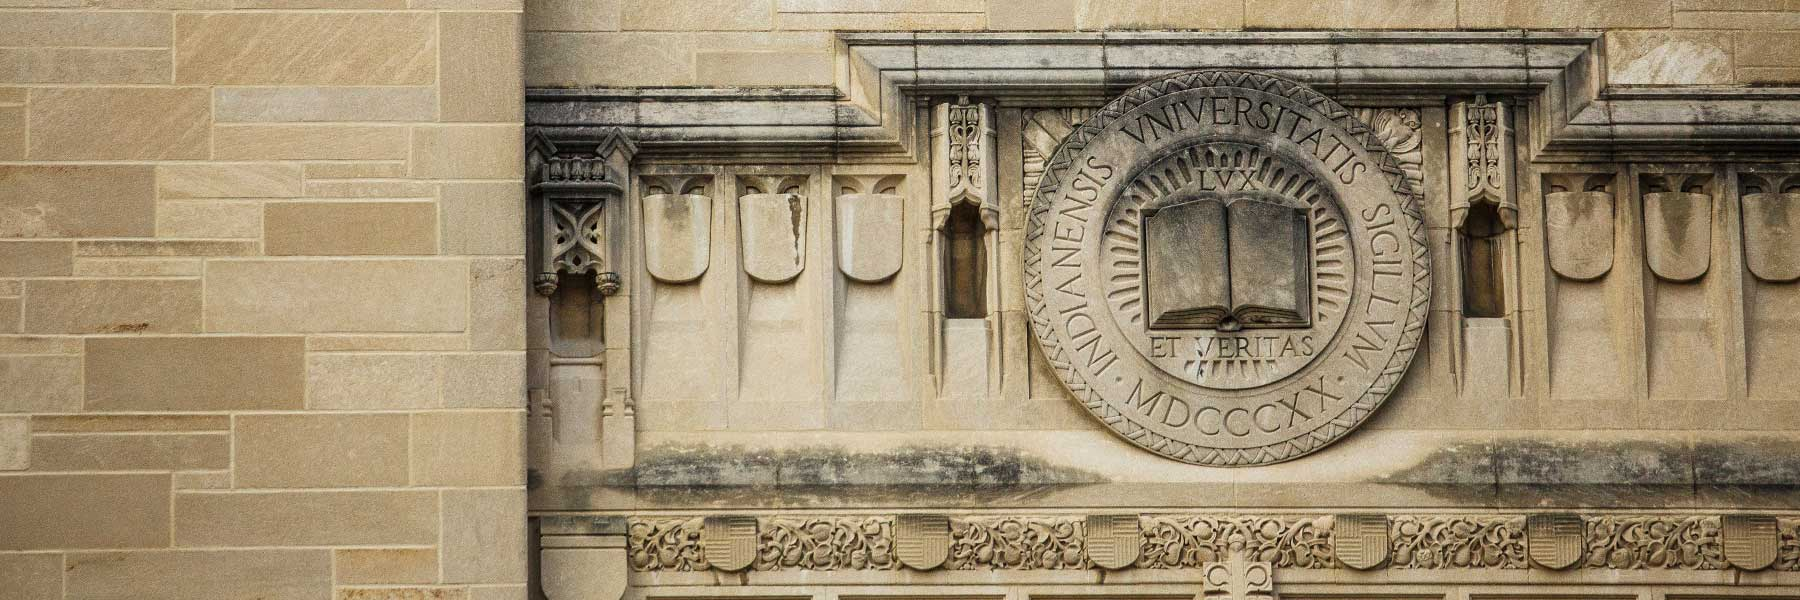 The Indiana University seal carved in limestone on the Indiana Memorial Union building